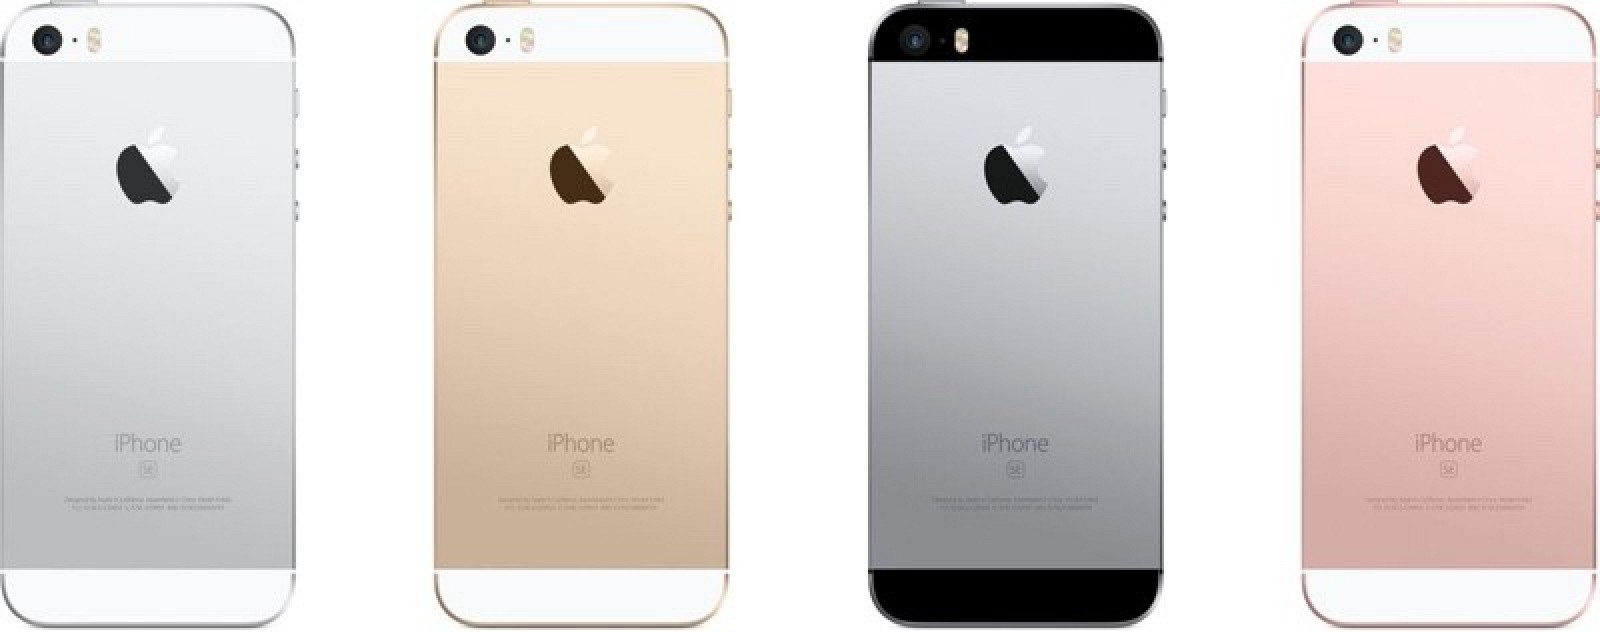 iPhone SE 2 Launch Date Possibly Leaked and It's Close